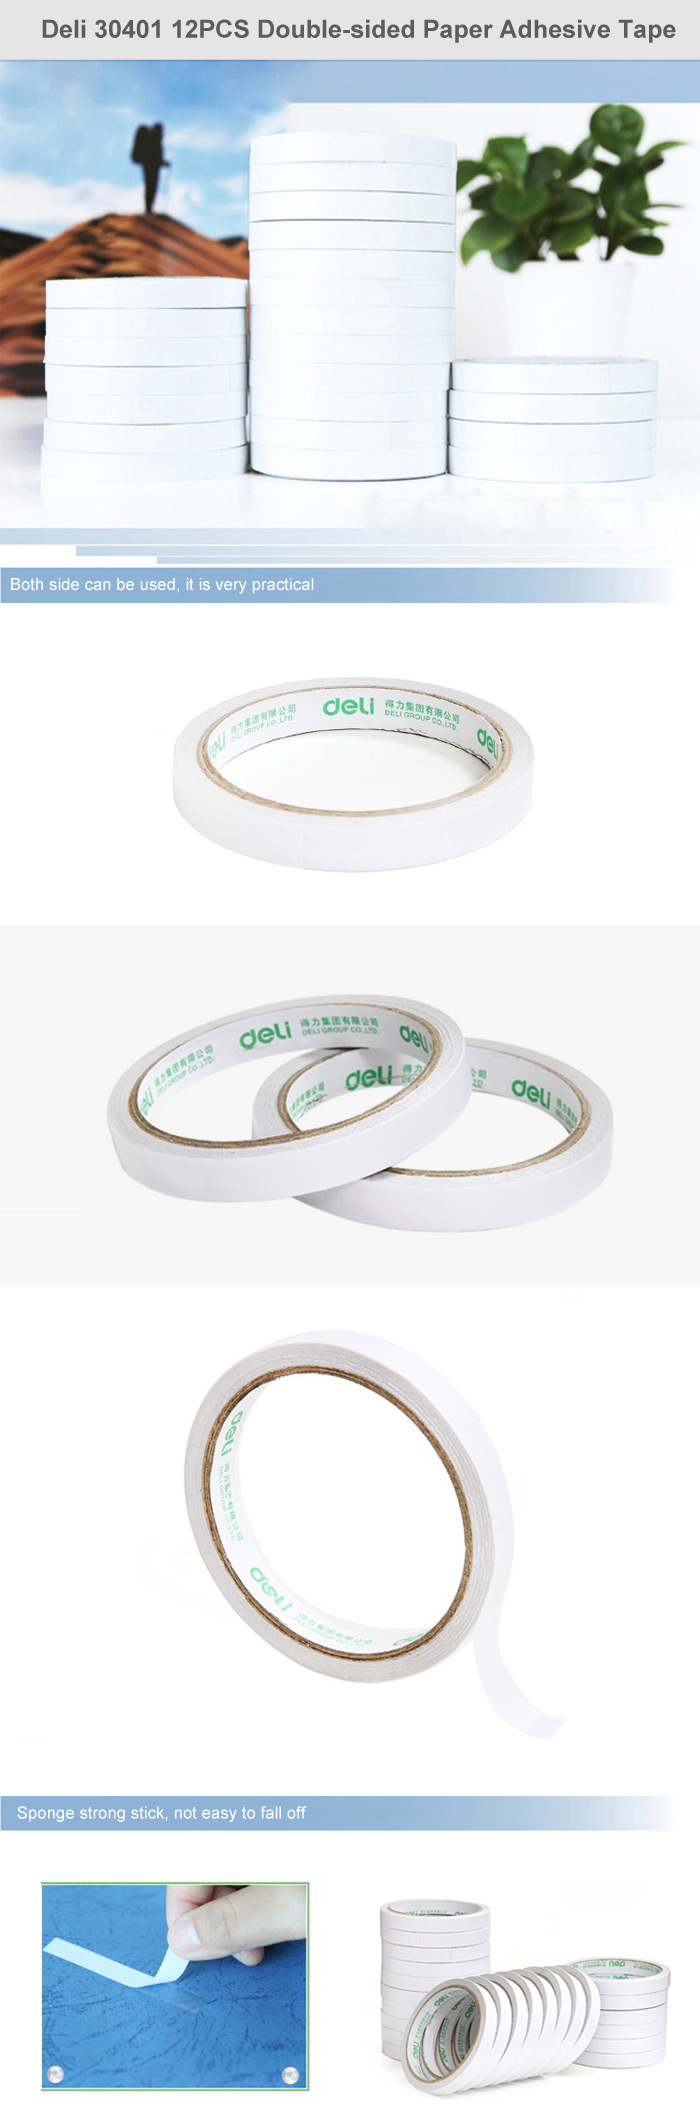 Deli 30401 12PCS Double-sided Paper Adhesive Tape Office / Student Supplies